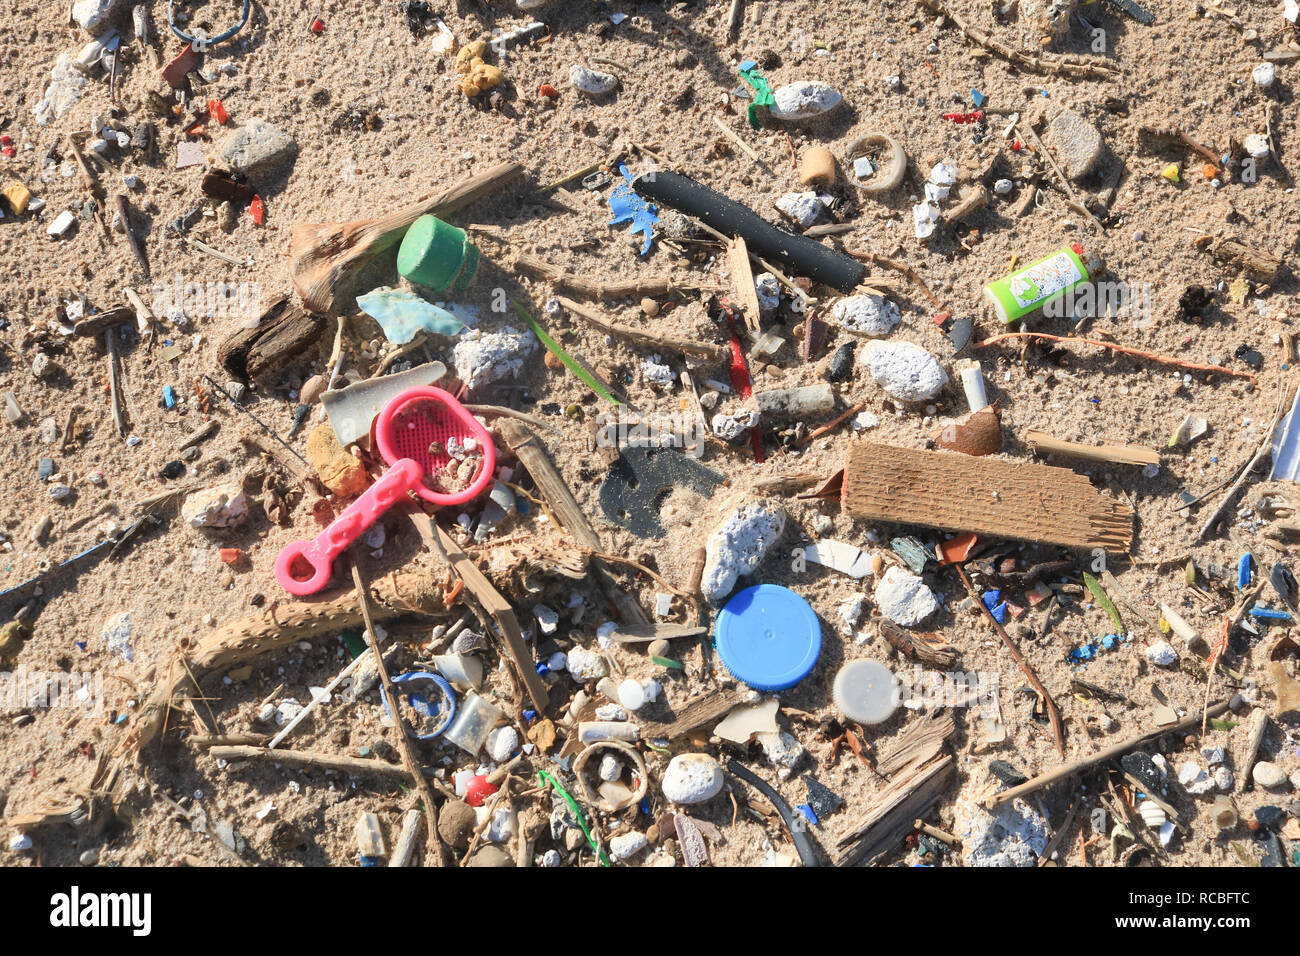 Beirut, Lebanon. 15th January 2019. Hundreds of plastic objects including consumer items are abandoned and washed on a public beach in South Beirut. It is estimated that 1.1 to 8.8 million metric tons (MT) of plastic waste enters the ocean from coastal communities each year and marine animals have been  harmed by  entanglement in plastic objects Credit: amer ghazzal/Alamy Live News - Stock Image